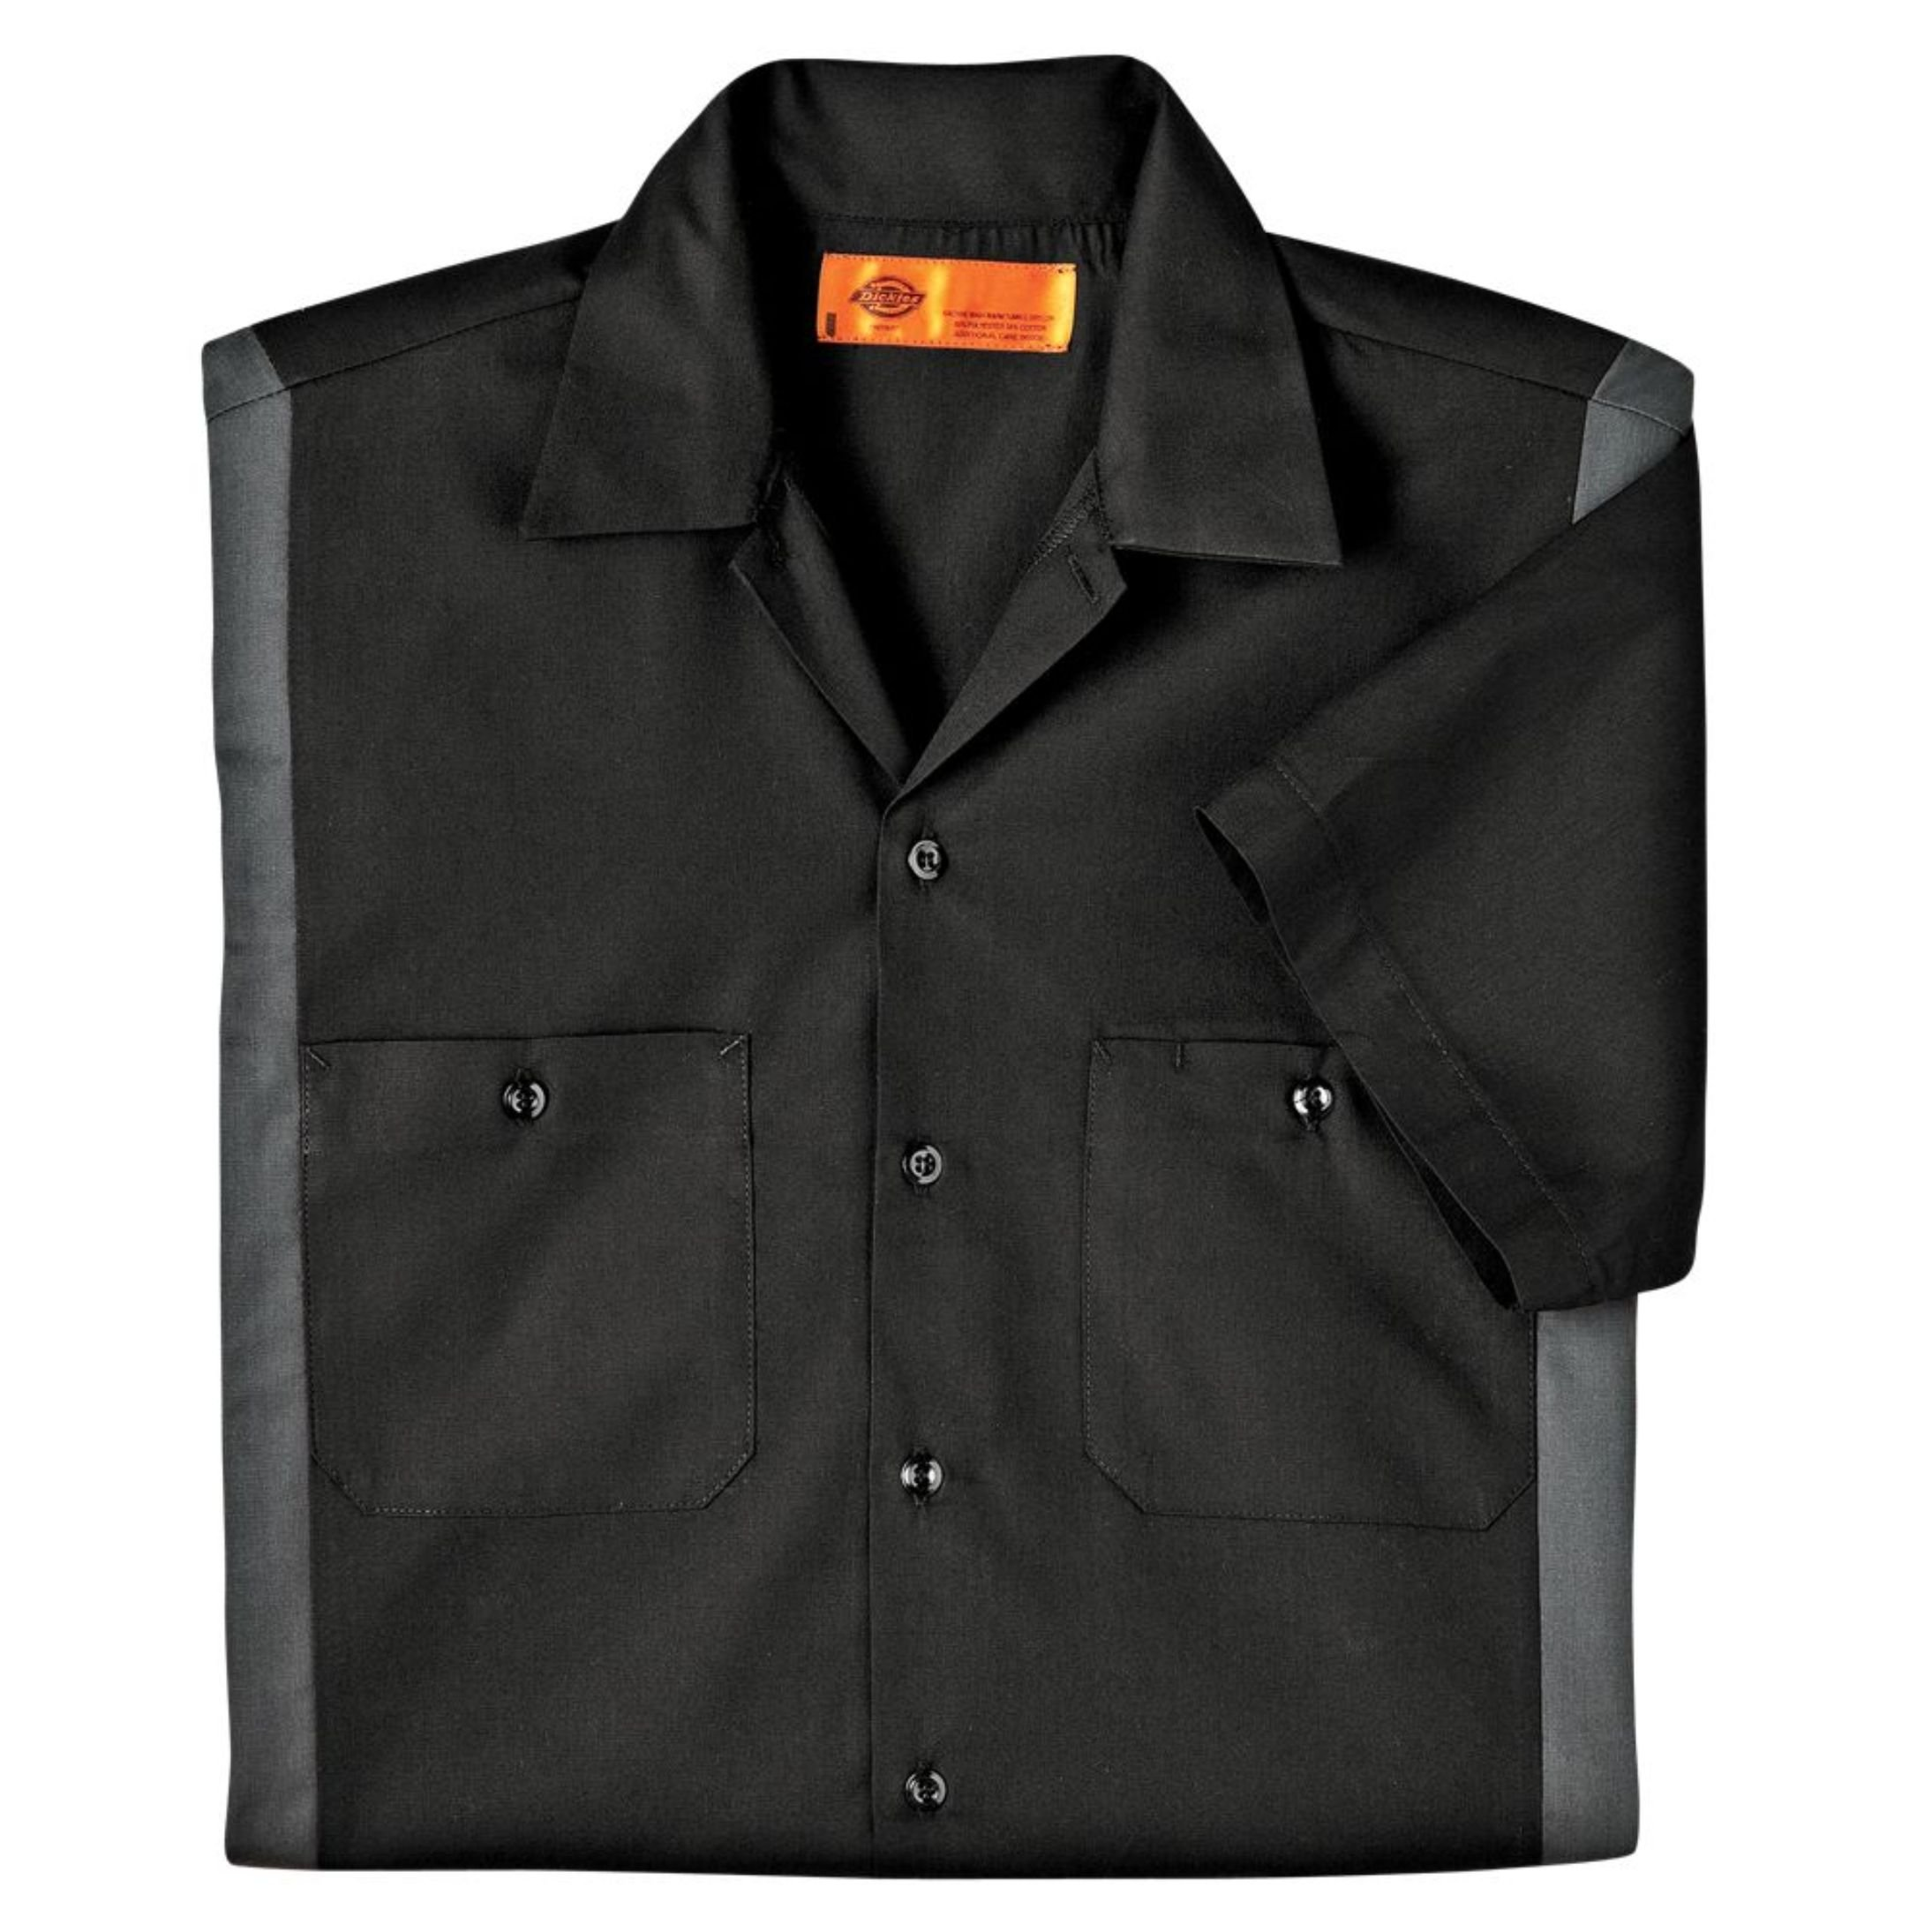 Dickies Occupational Workwear LS524BKCH 3XL Polyester/ Cotton Men's Short Sleeve Industrial Color Block Shirt, 3X-Large, Black/ Dark Charcoal by Dickies Occupational Workwear (Image #1)